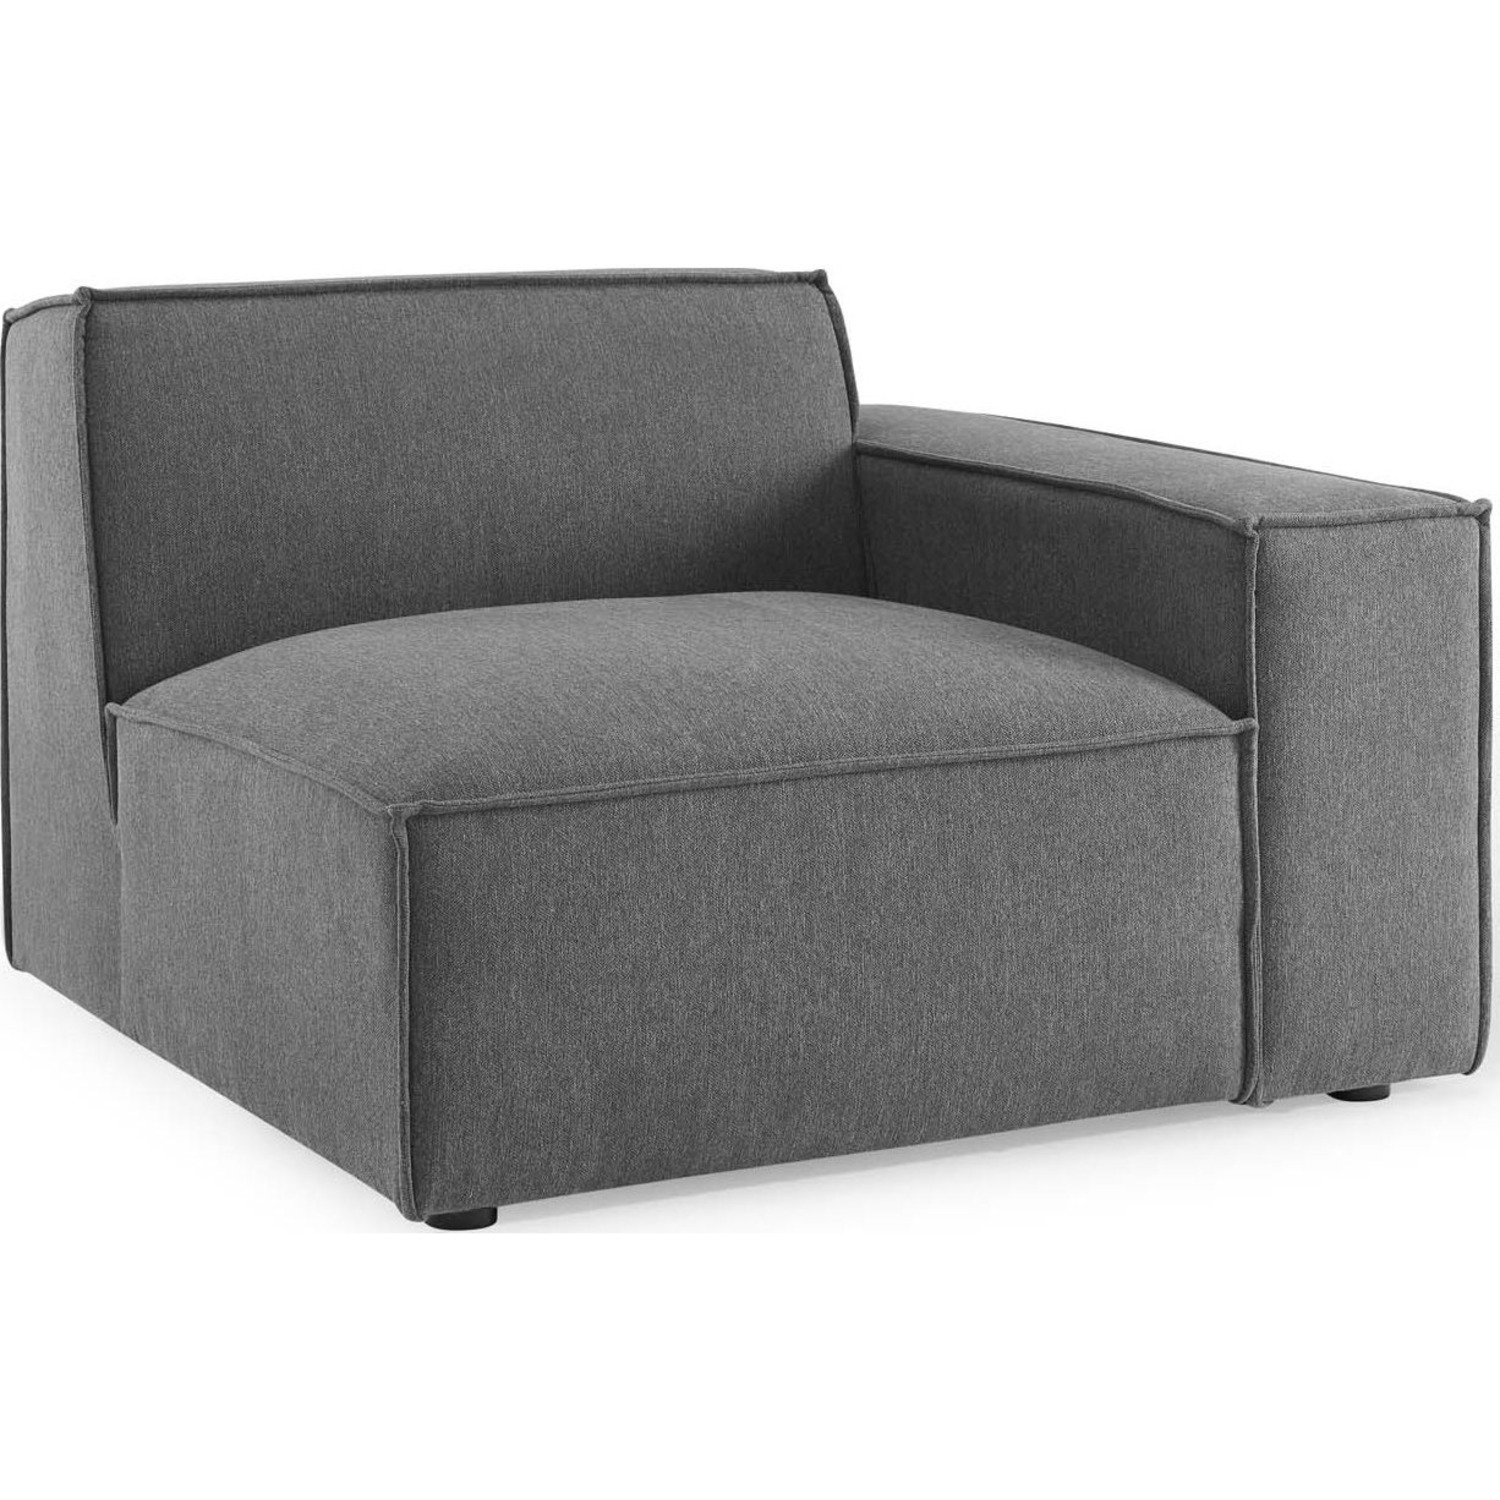 4-Piece Sectional Sofa In Charcoal Fabric - image-2